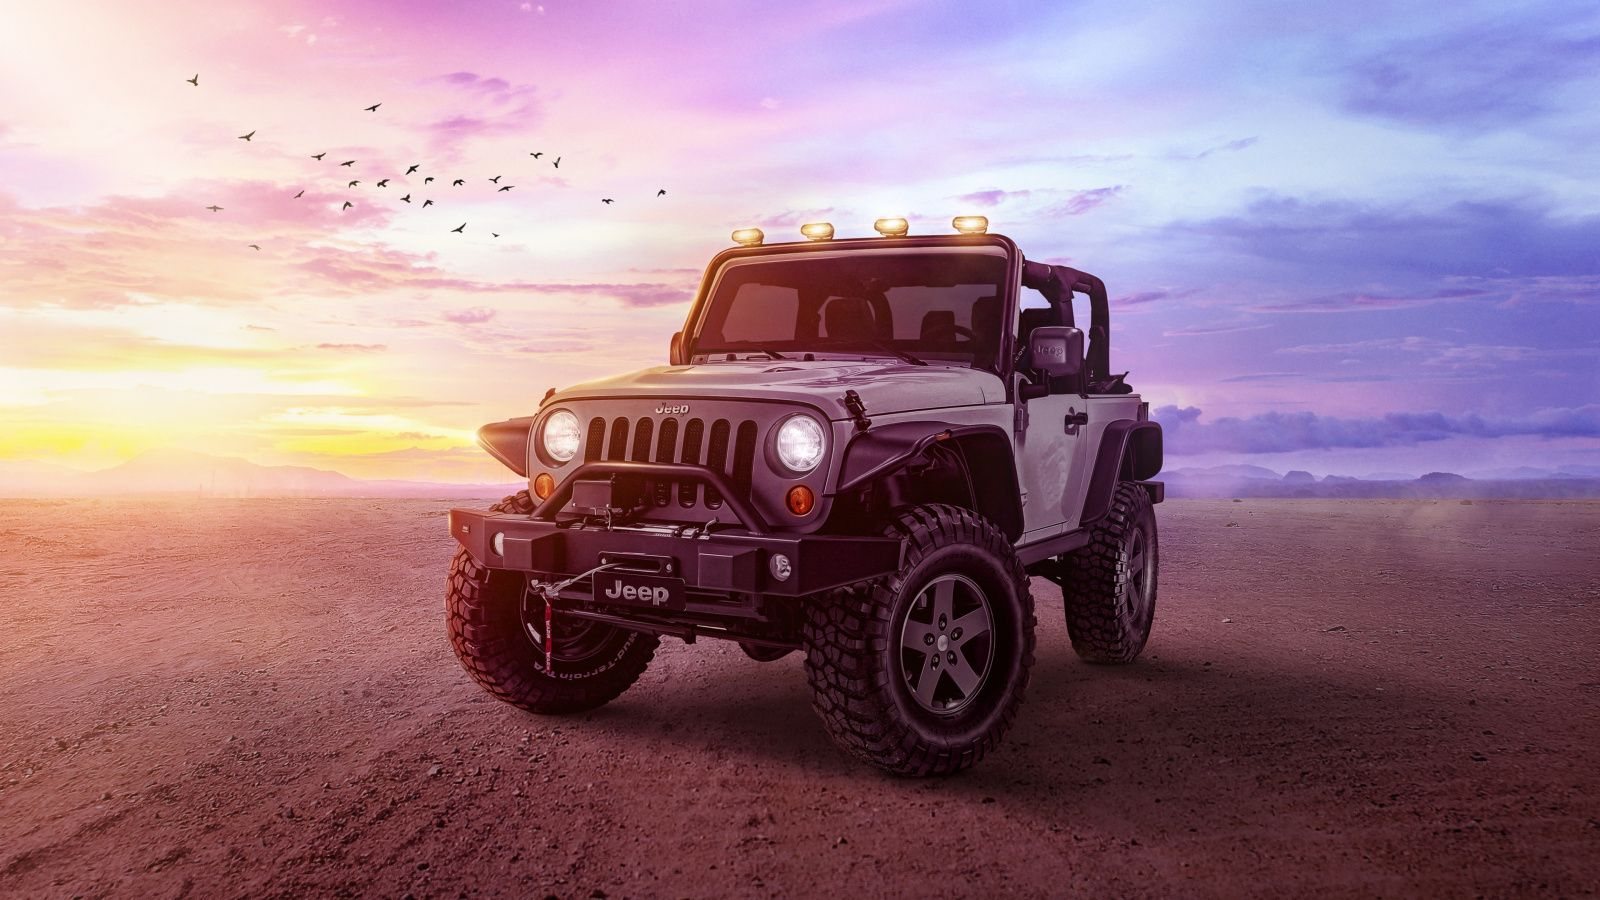 1600x900 Jeep Wrangler Suv Car Wallpaper In 2020 Jeep Wrangler